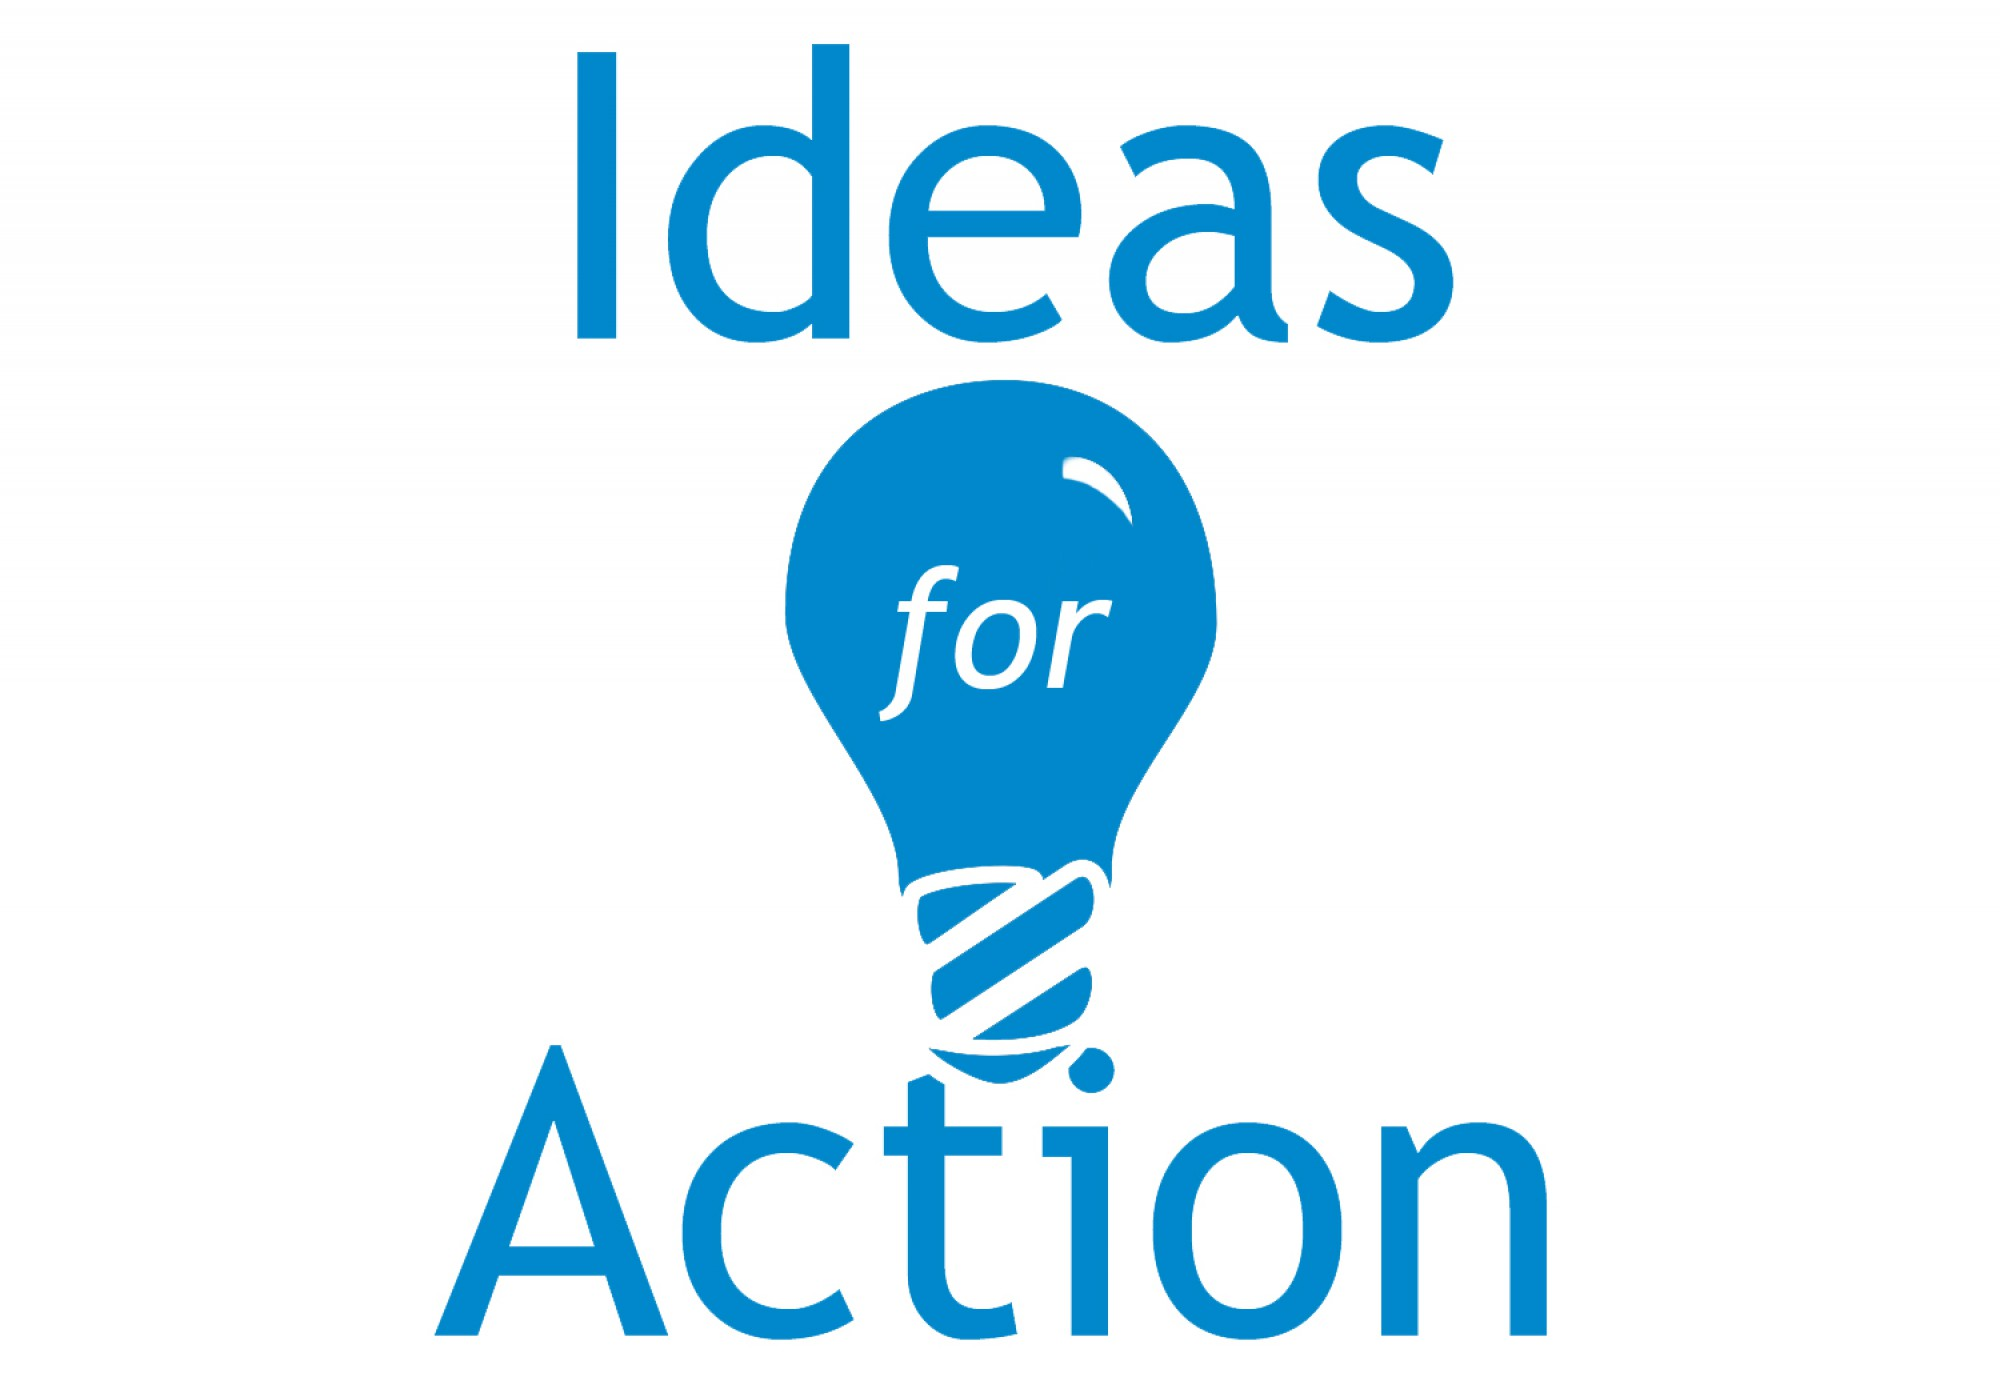 Ideas Action Ideas For Action | Financing